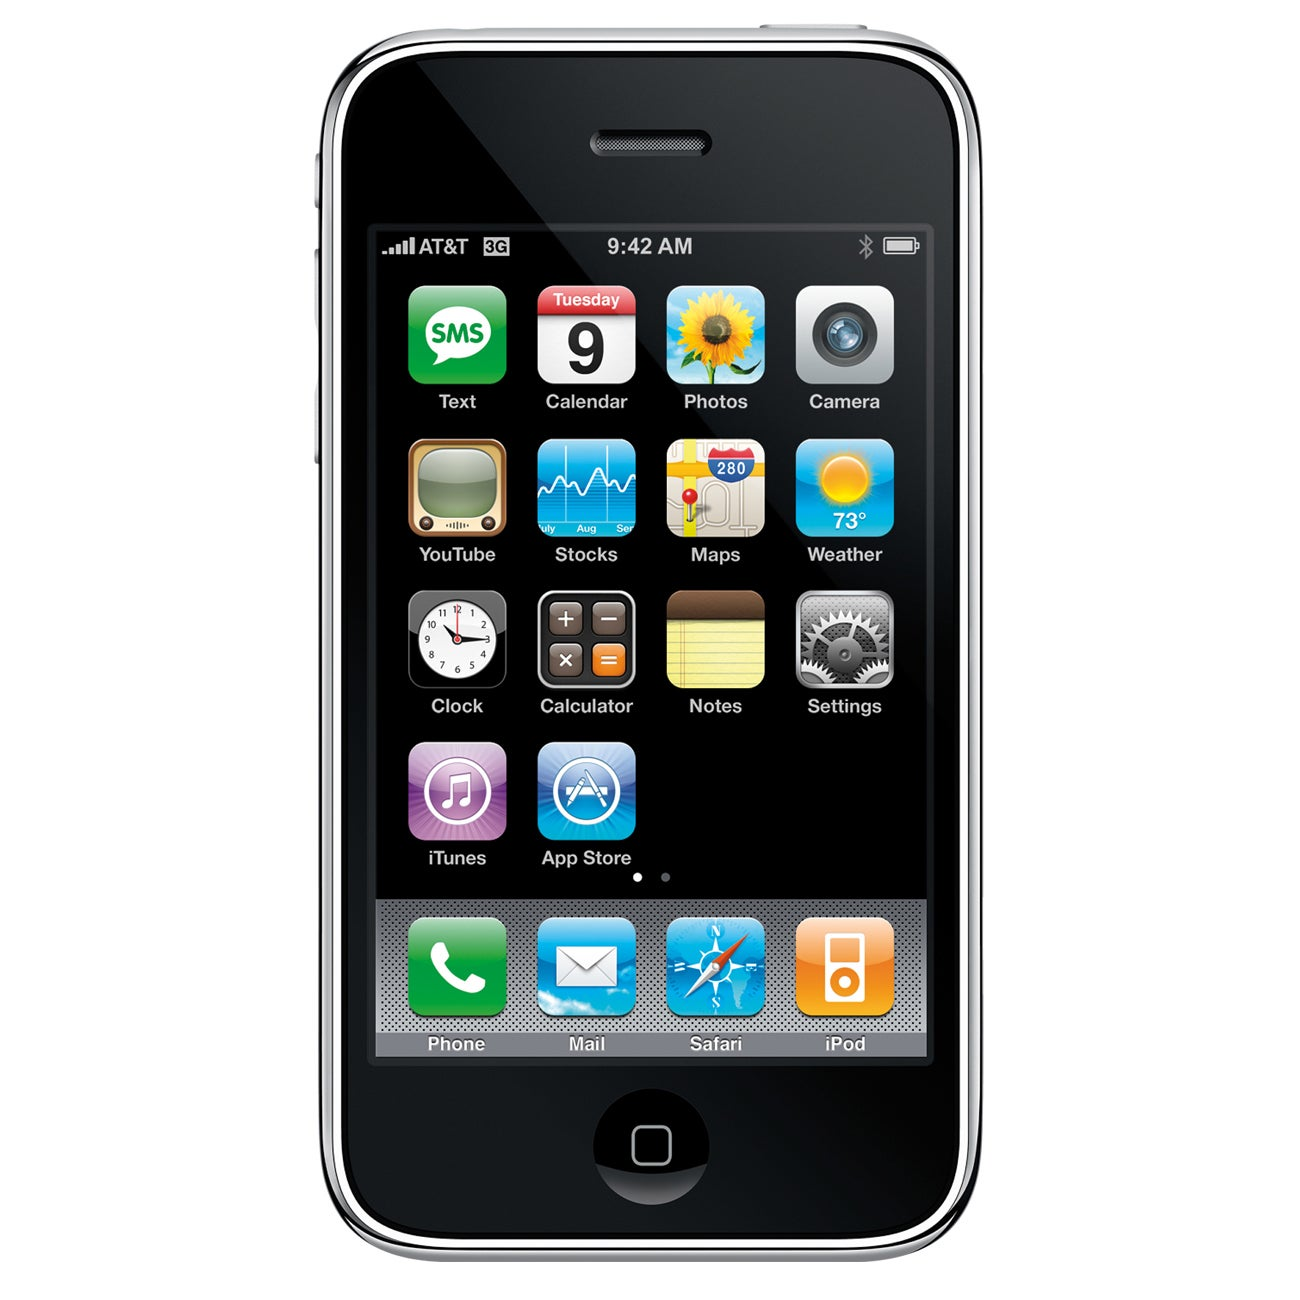 Apple iPhone 3GS Smartphone - Wi-Fi - 3.5G - Bar - Black - Thumbnail 0